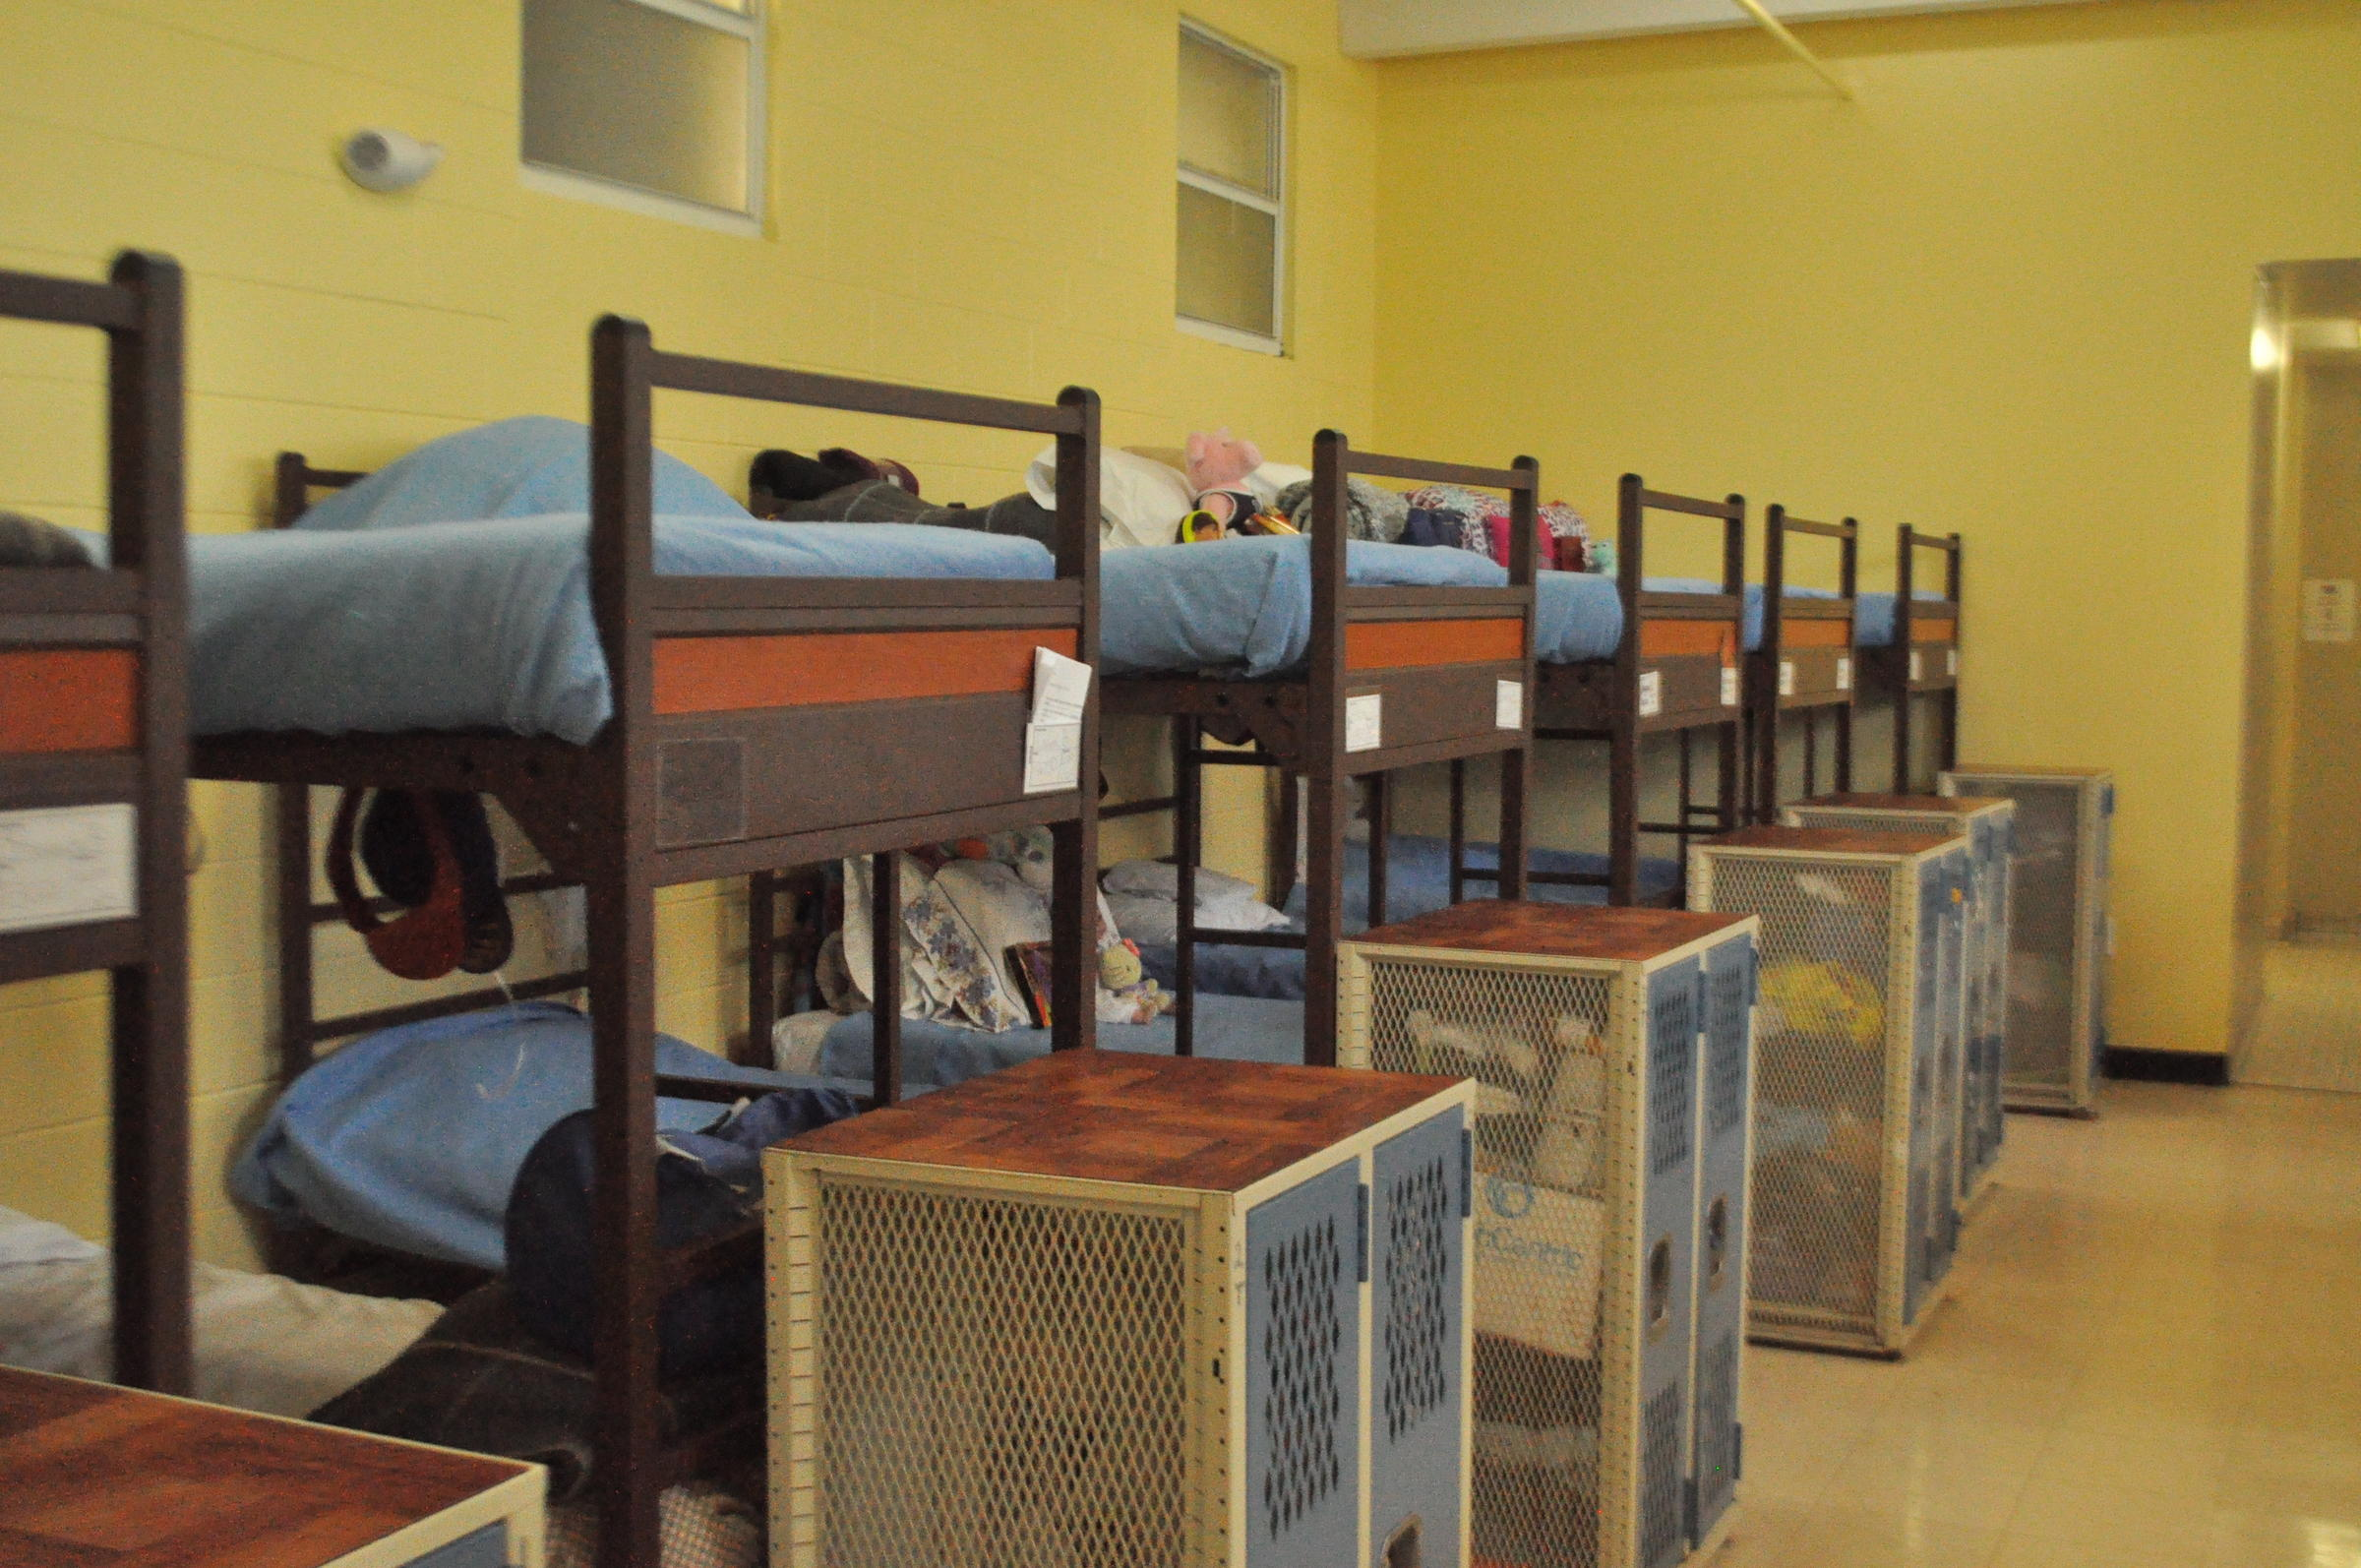 miami homeless shelter  u0026 39 infested u0026 39  with bed bugs